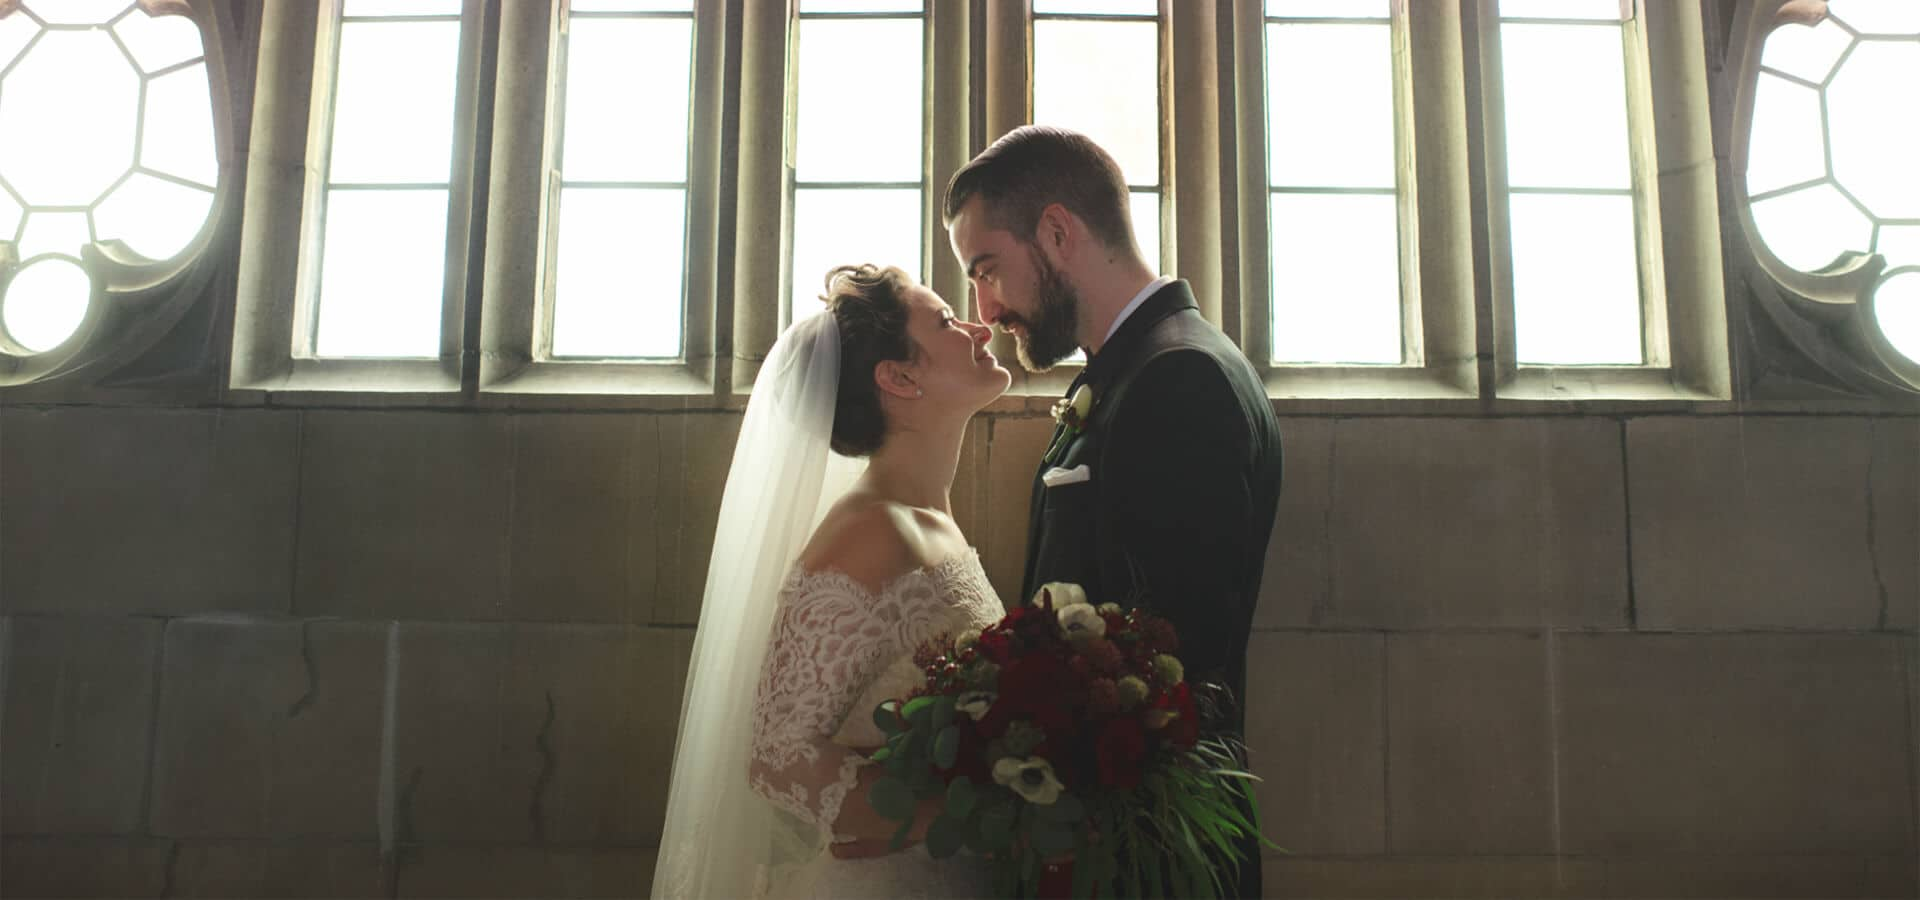 Hero image for Melanie and Martyn's Enchanting Winter Wedding at Knox College and Casa Loma